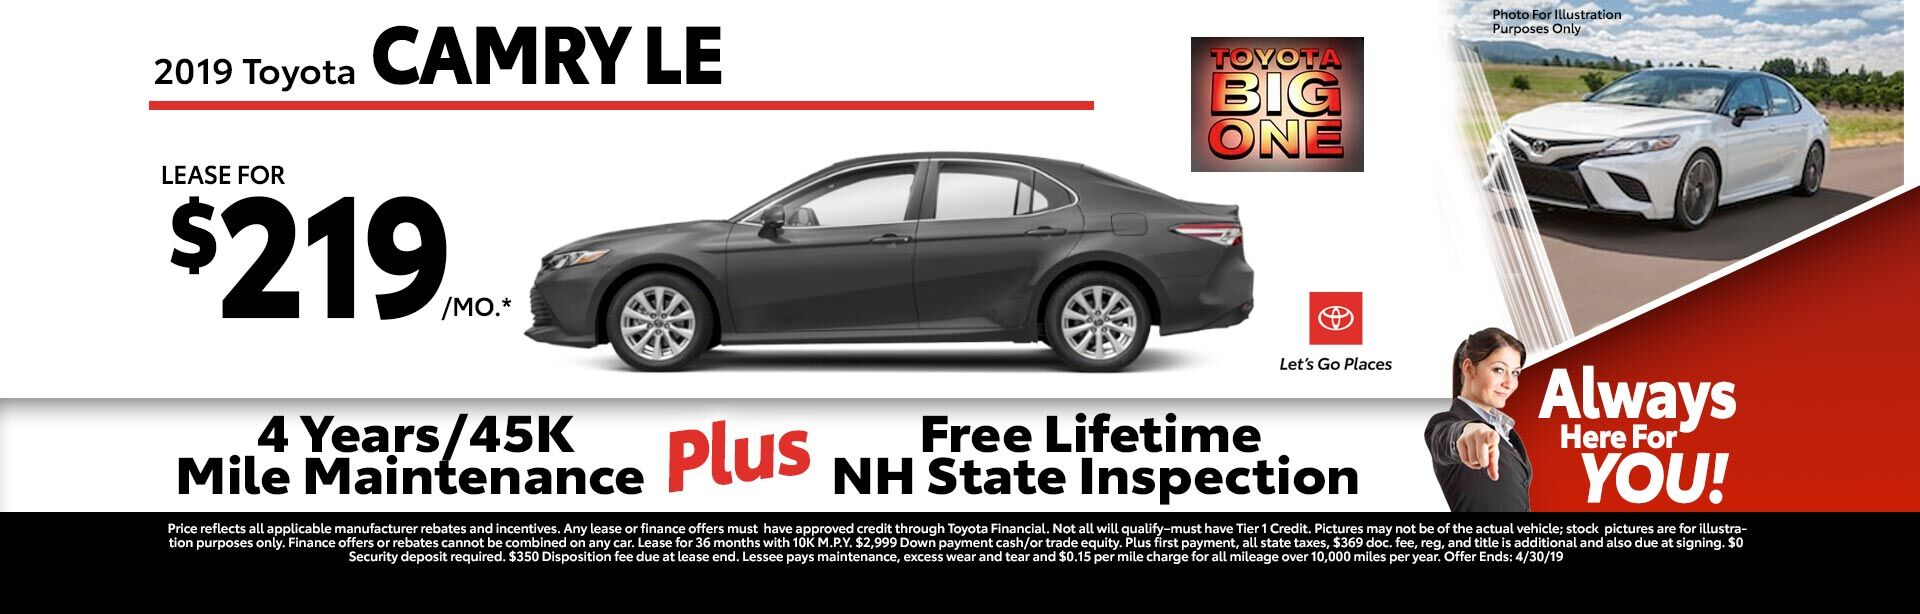 2019 Toyota Camry LE Special at McGee Toyota of Claremont